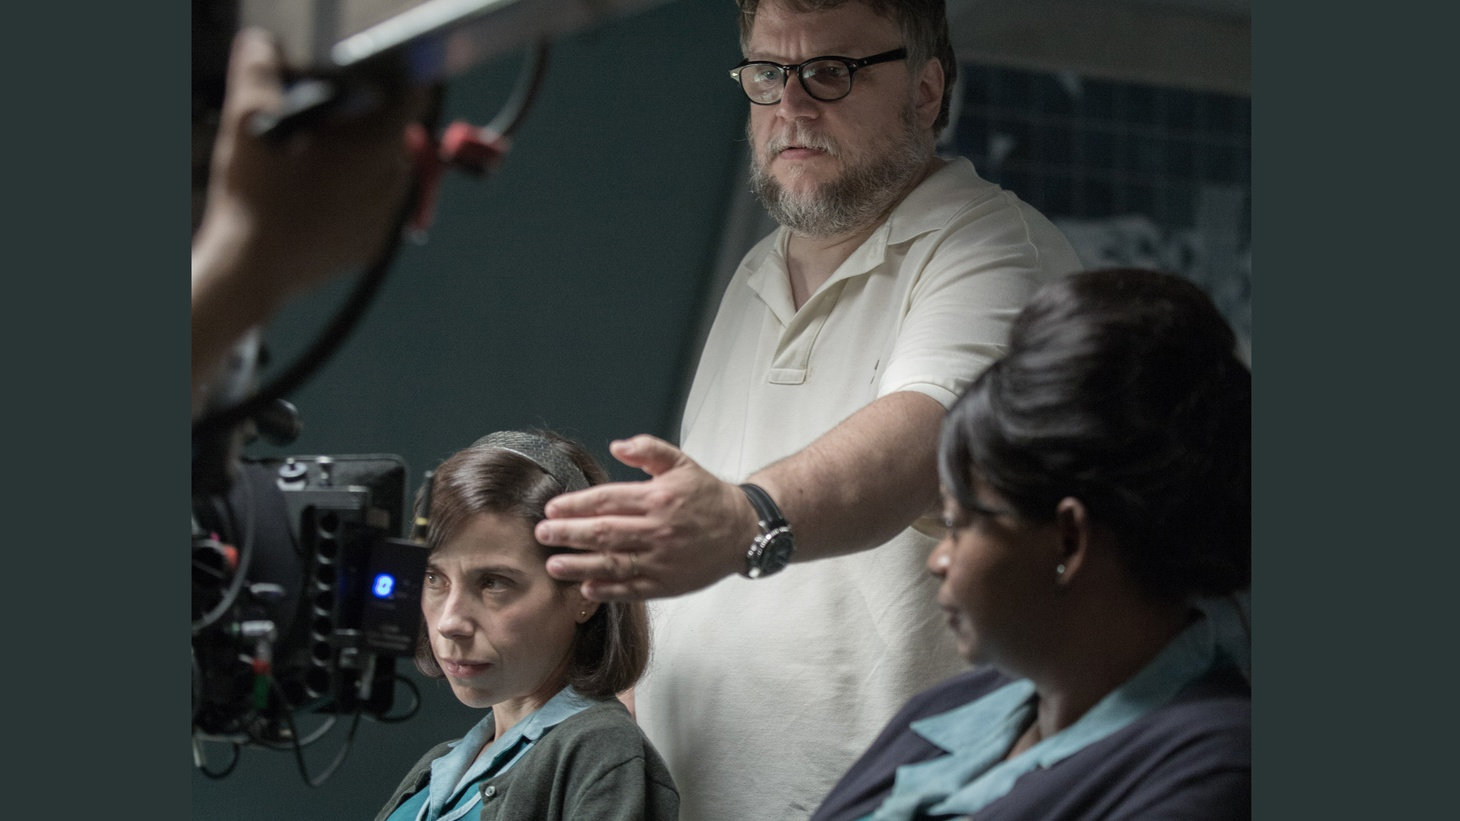 Guillermo del Toro's new film, The Shape of Water, is a visually stunning love story between a mute cleaning woman and an exotic sea creature. It looks expensive, but del Toro actually came in under his modest budget.